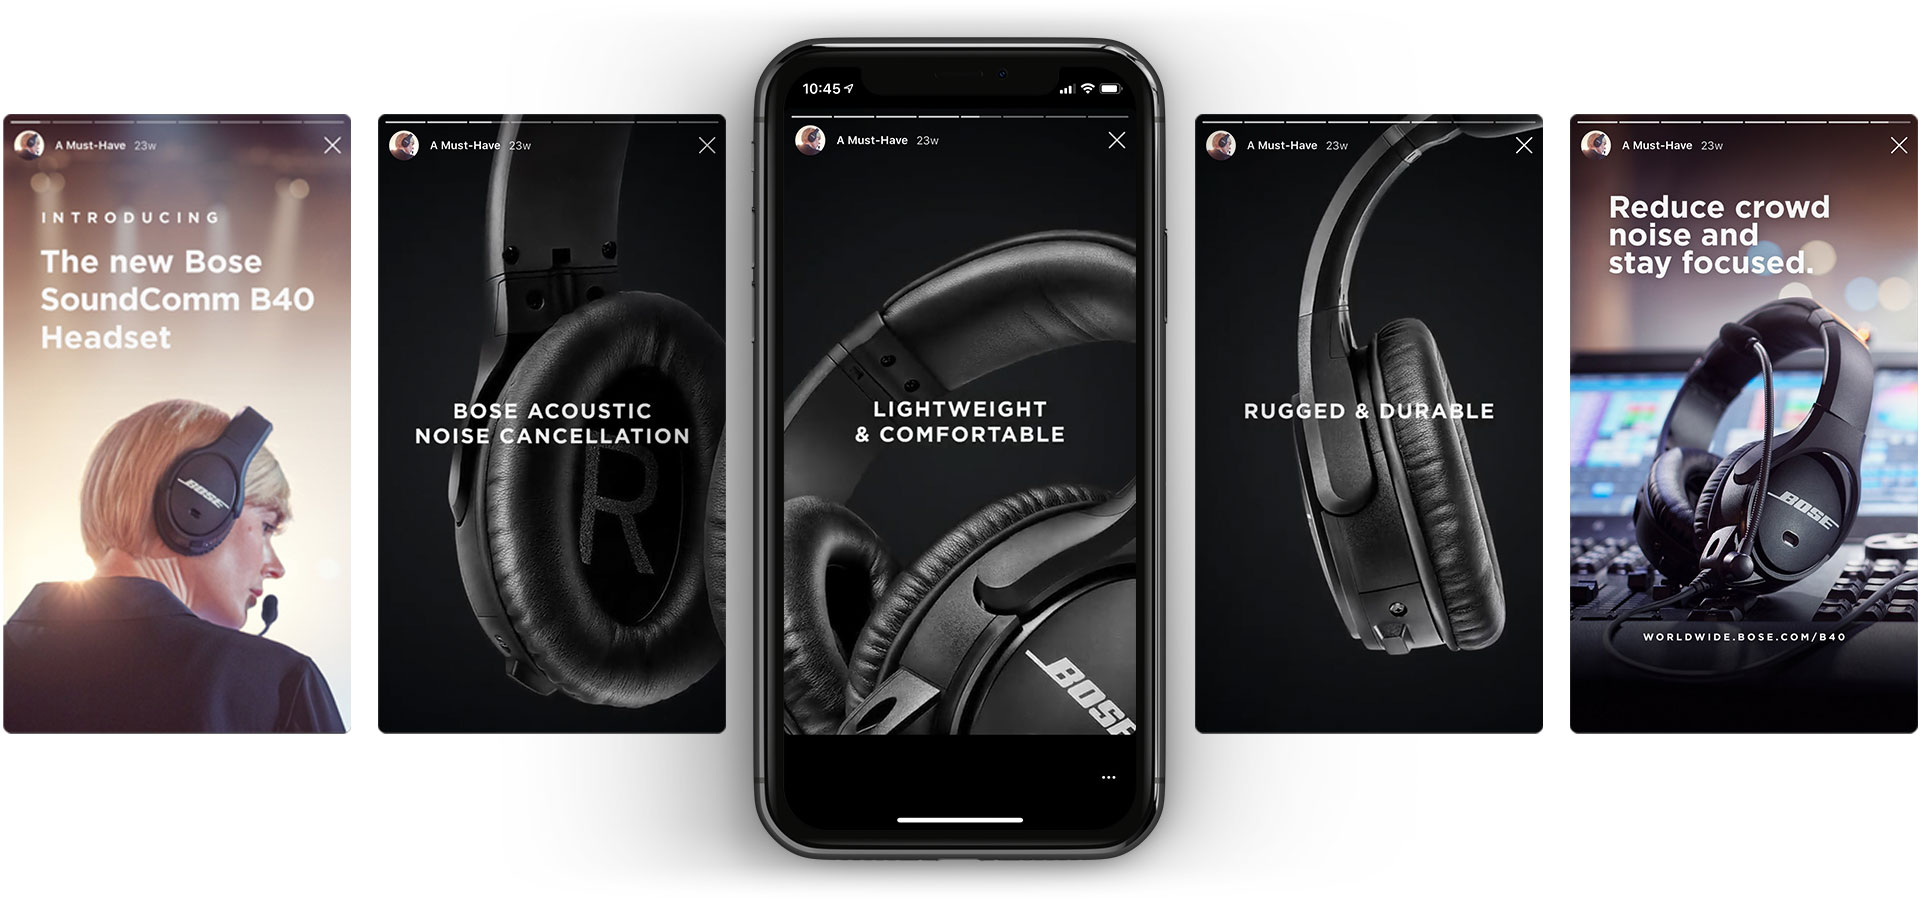 Phone mockup example of a Bose SoundComm B40 Instagram Story